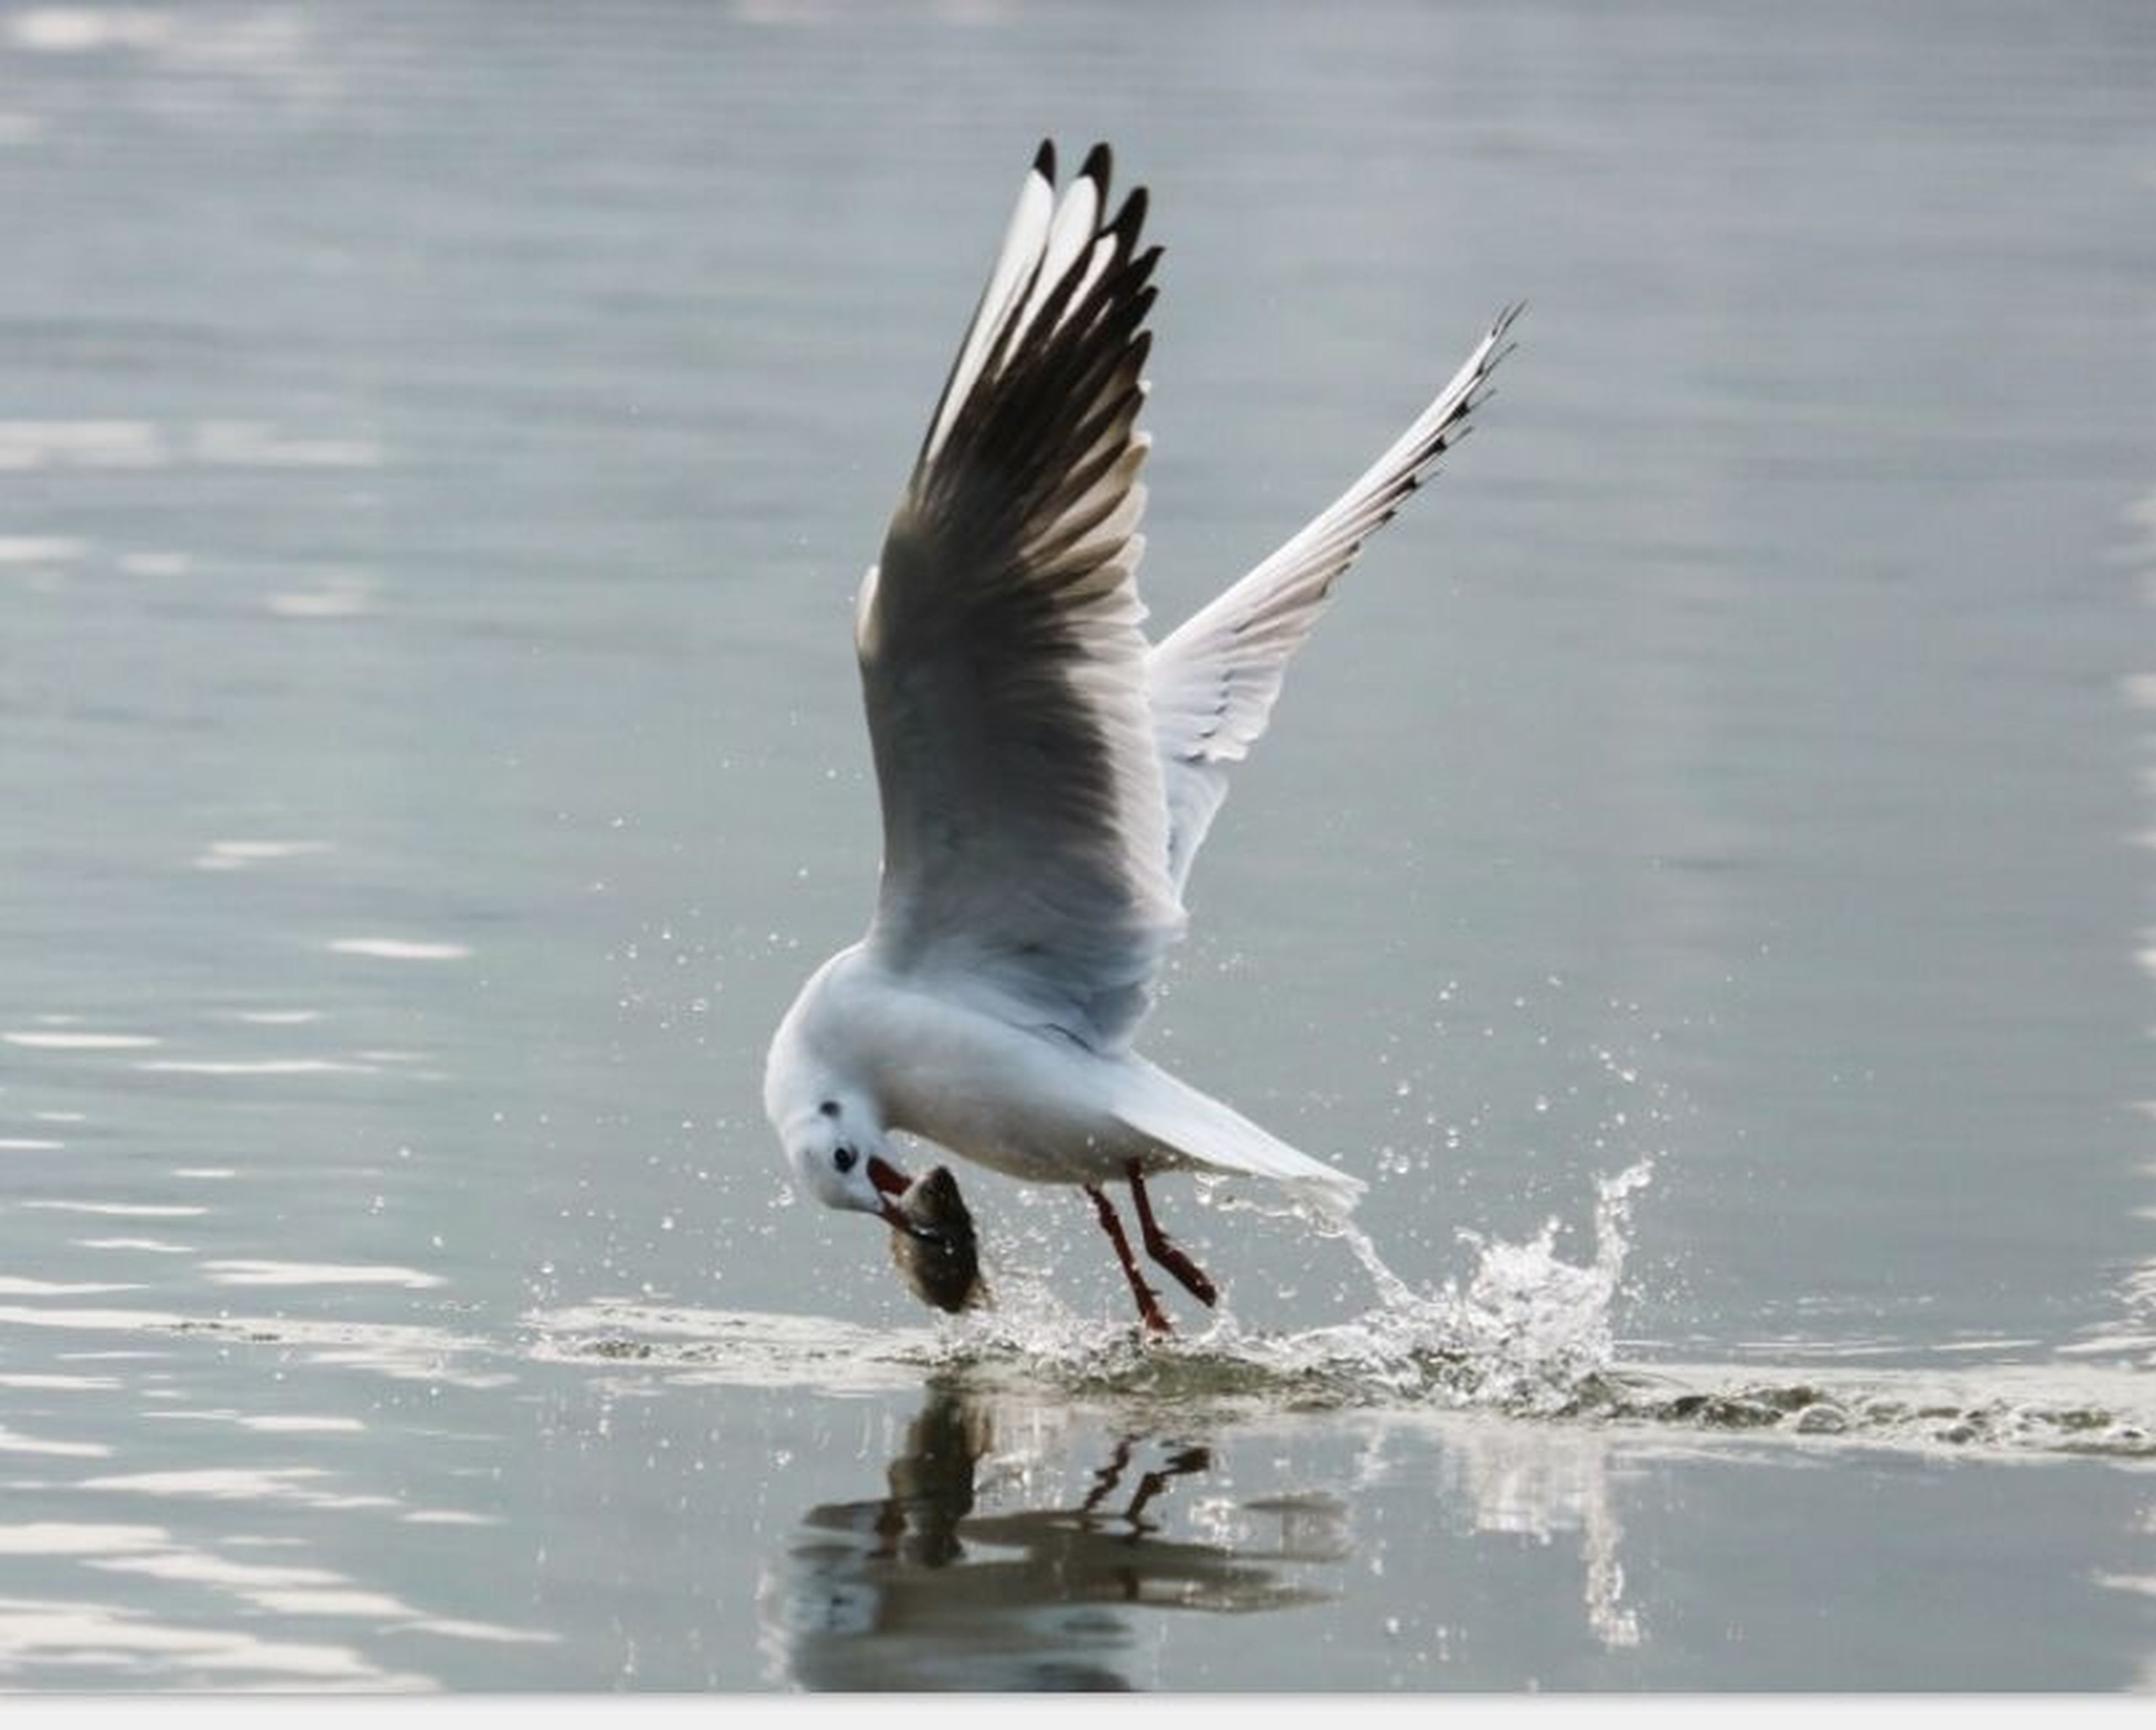 animal themes, animals in the wild, water, bird, one animal, wildlife, spread wings, waterfront, flying, motion, seagull, rippled, mid-air, nature, sea, lake, full length, day, outdoors, no people